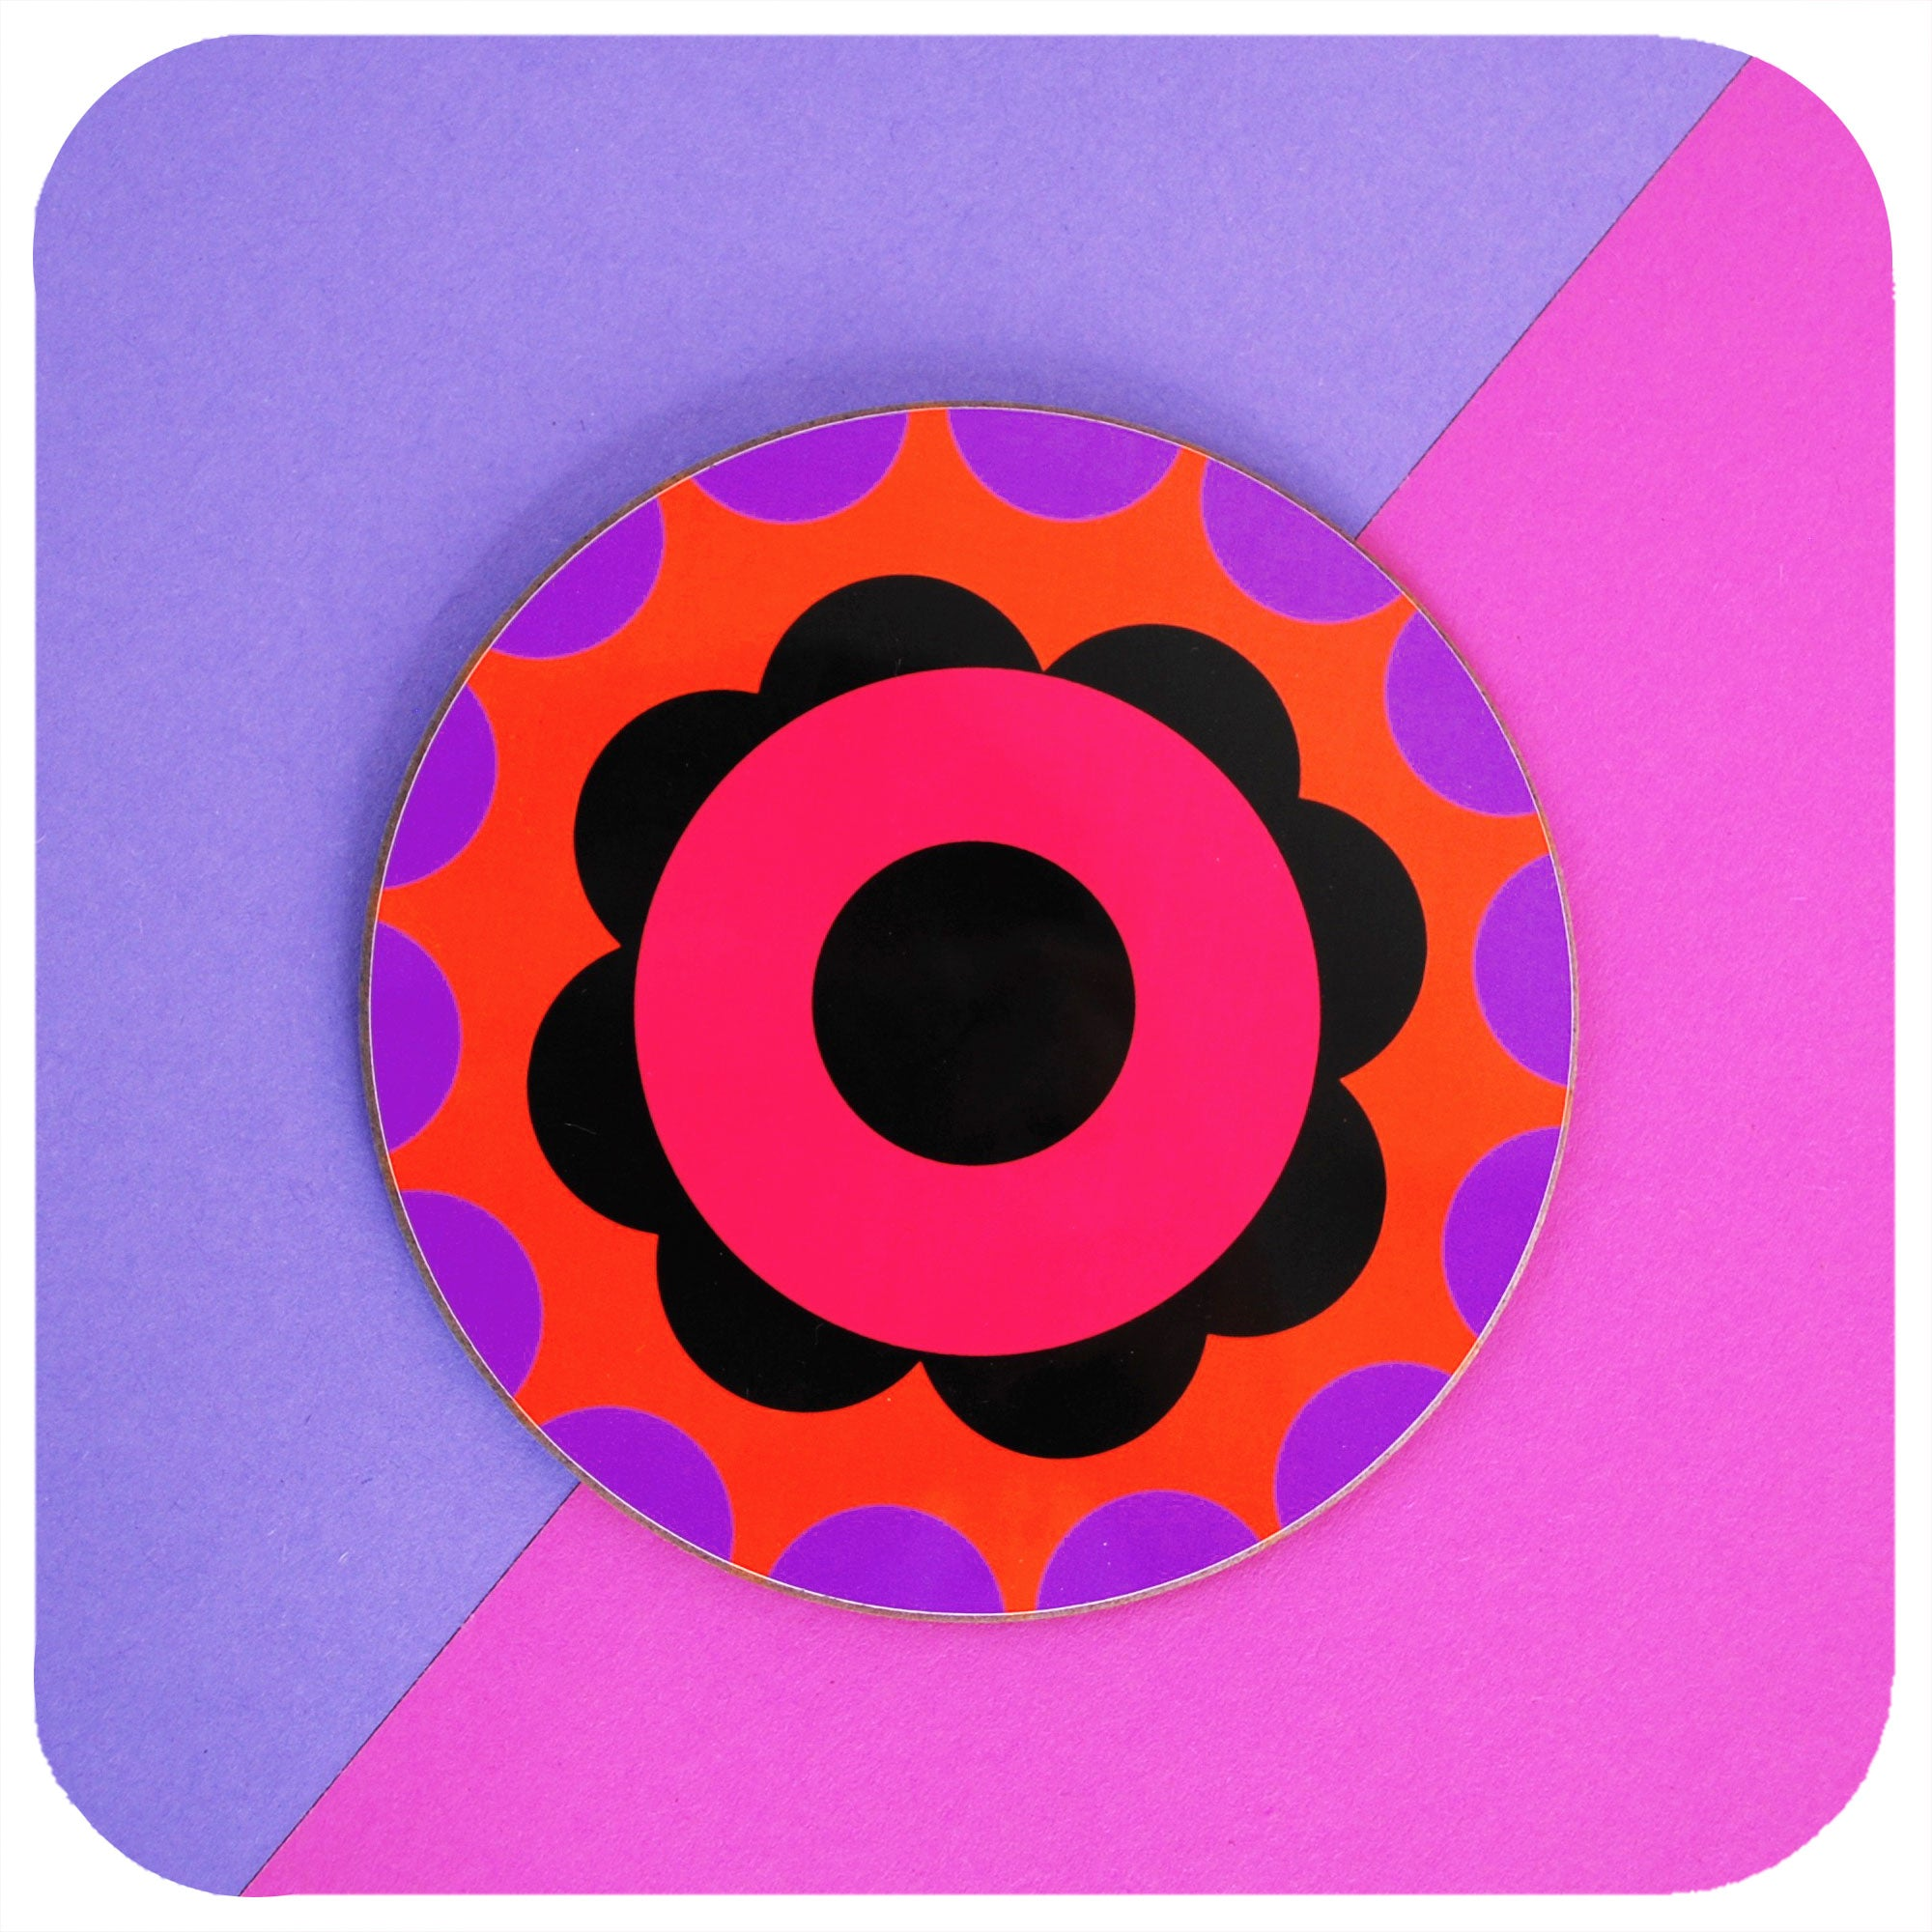 One 60s Flower Power round coaster on colourful pink and purple background | The Inkabilly Emporium